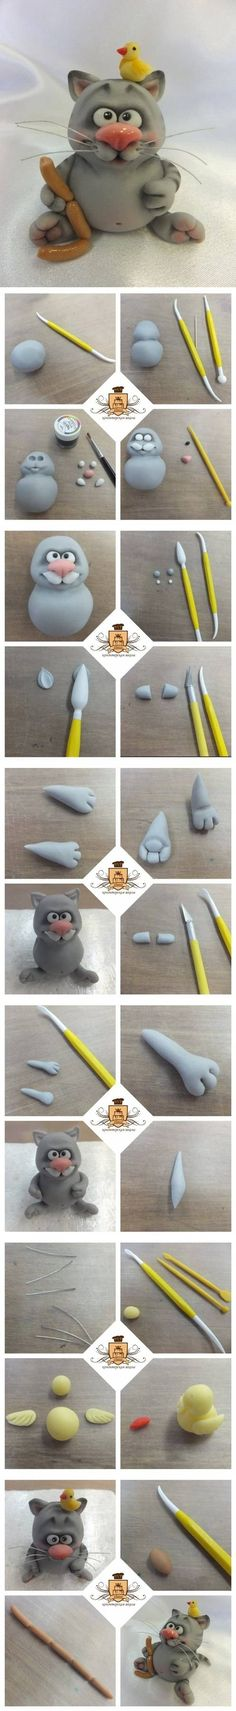 DIY Polymer Clay Cat cute cat pretty diy easy crafts diy ideas diy crafts do it yourself easy diy diy tips diy images diy photos diy pics easy diy craft ideas diy tutorial diy tutorials fun diy